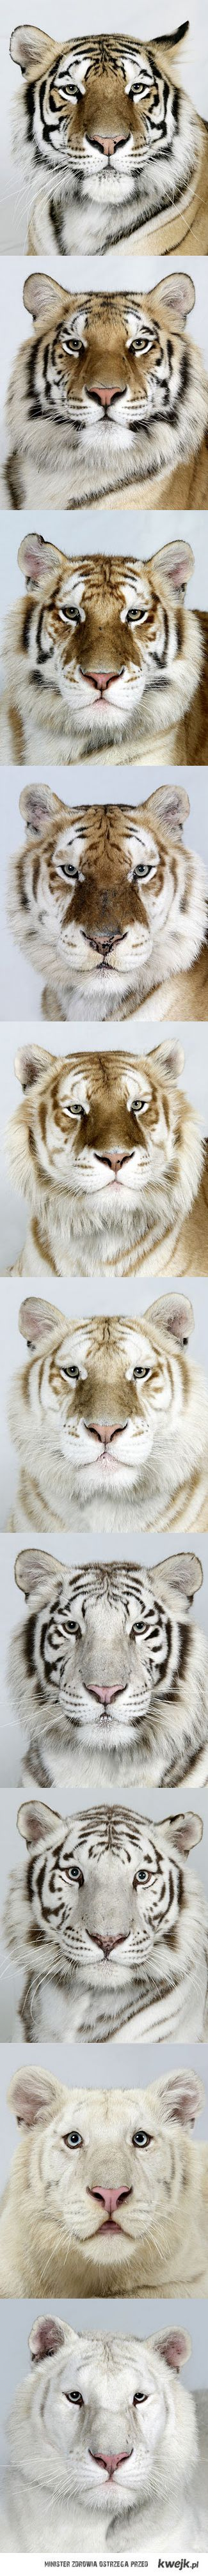 Tigers - I bet they think we all look the same. My beloved!